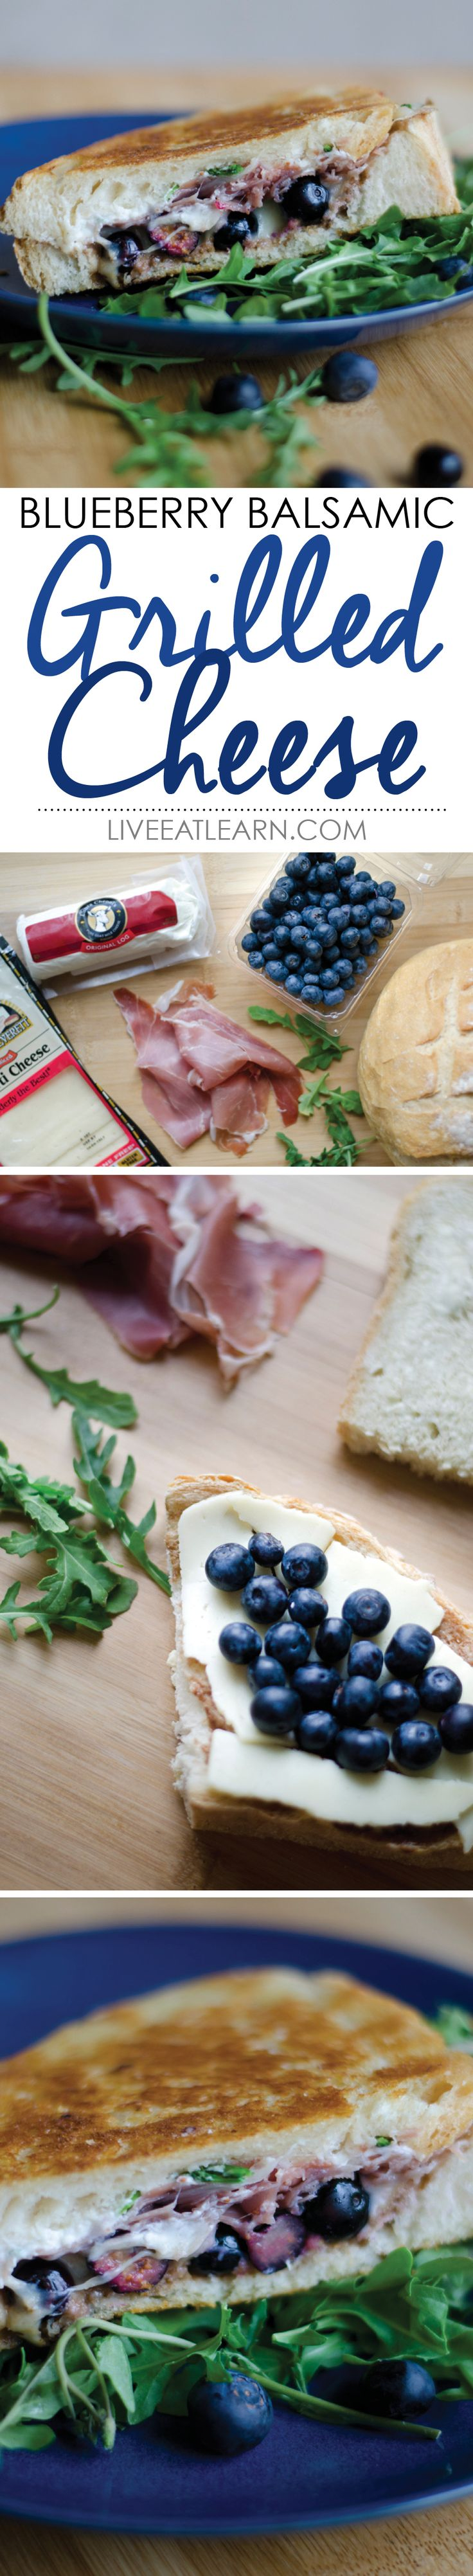 Blueberry balsamic grilled cheese sandwich with goat cheese, arugula, and prosciutto // Live Eat Learn